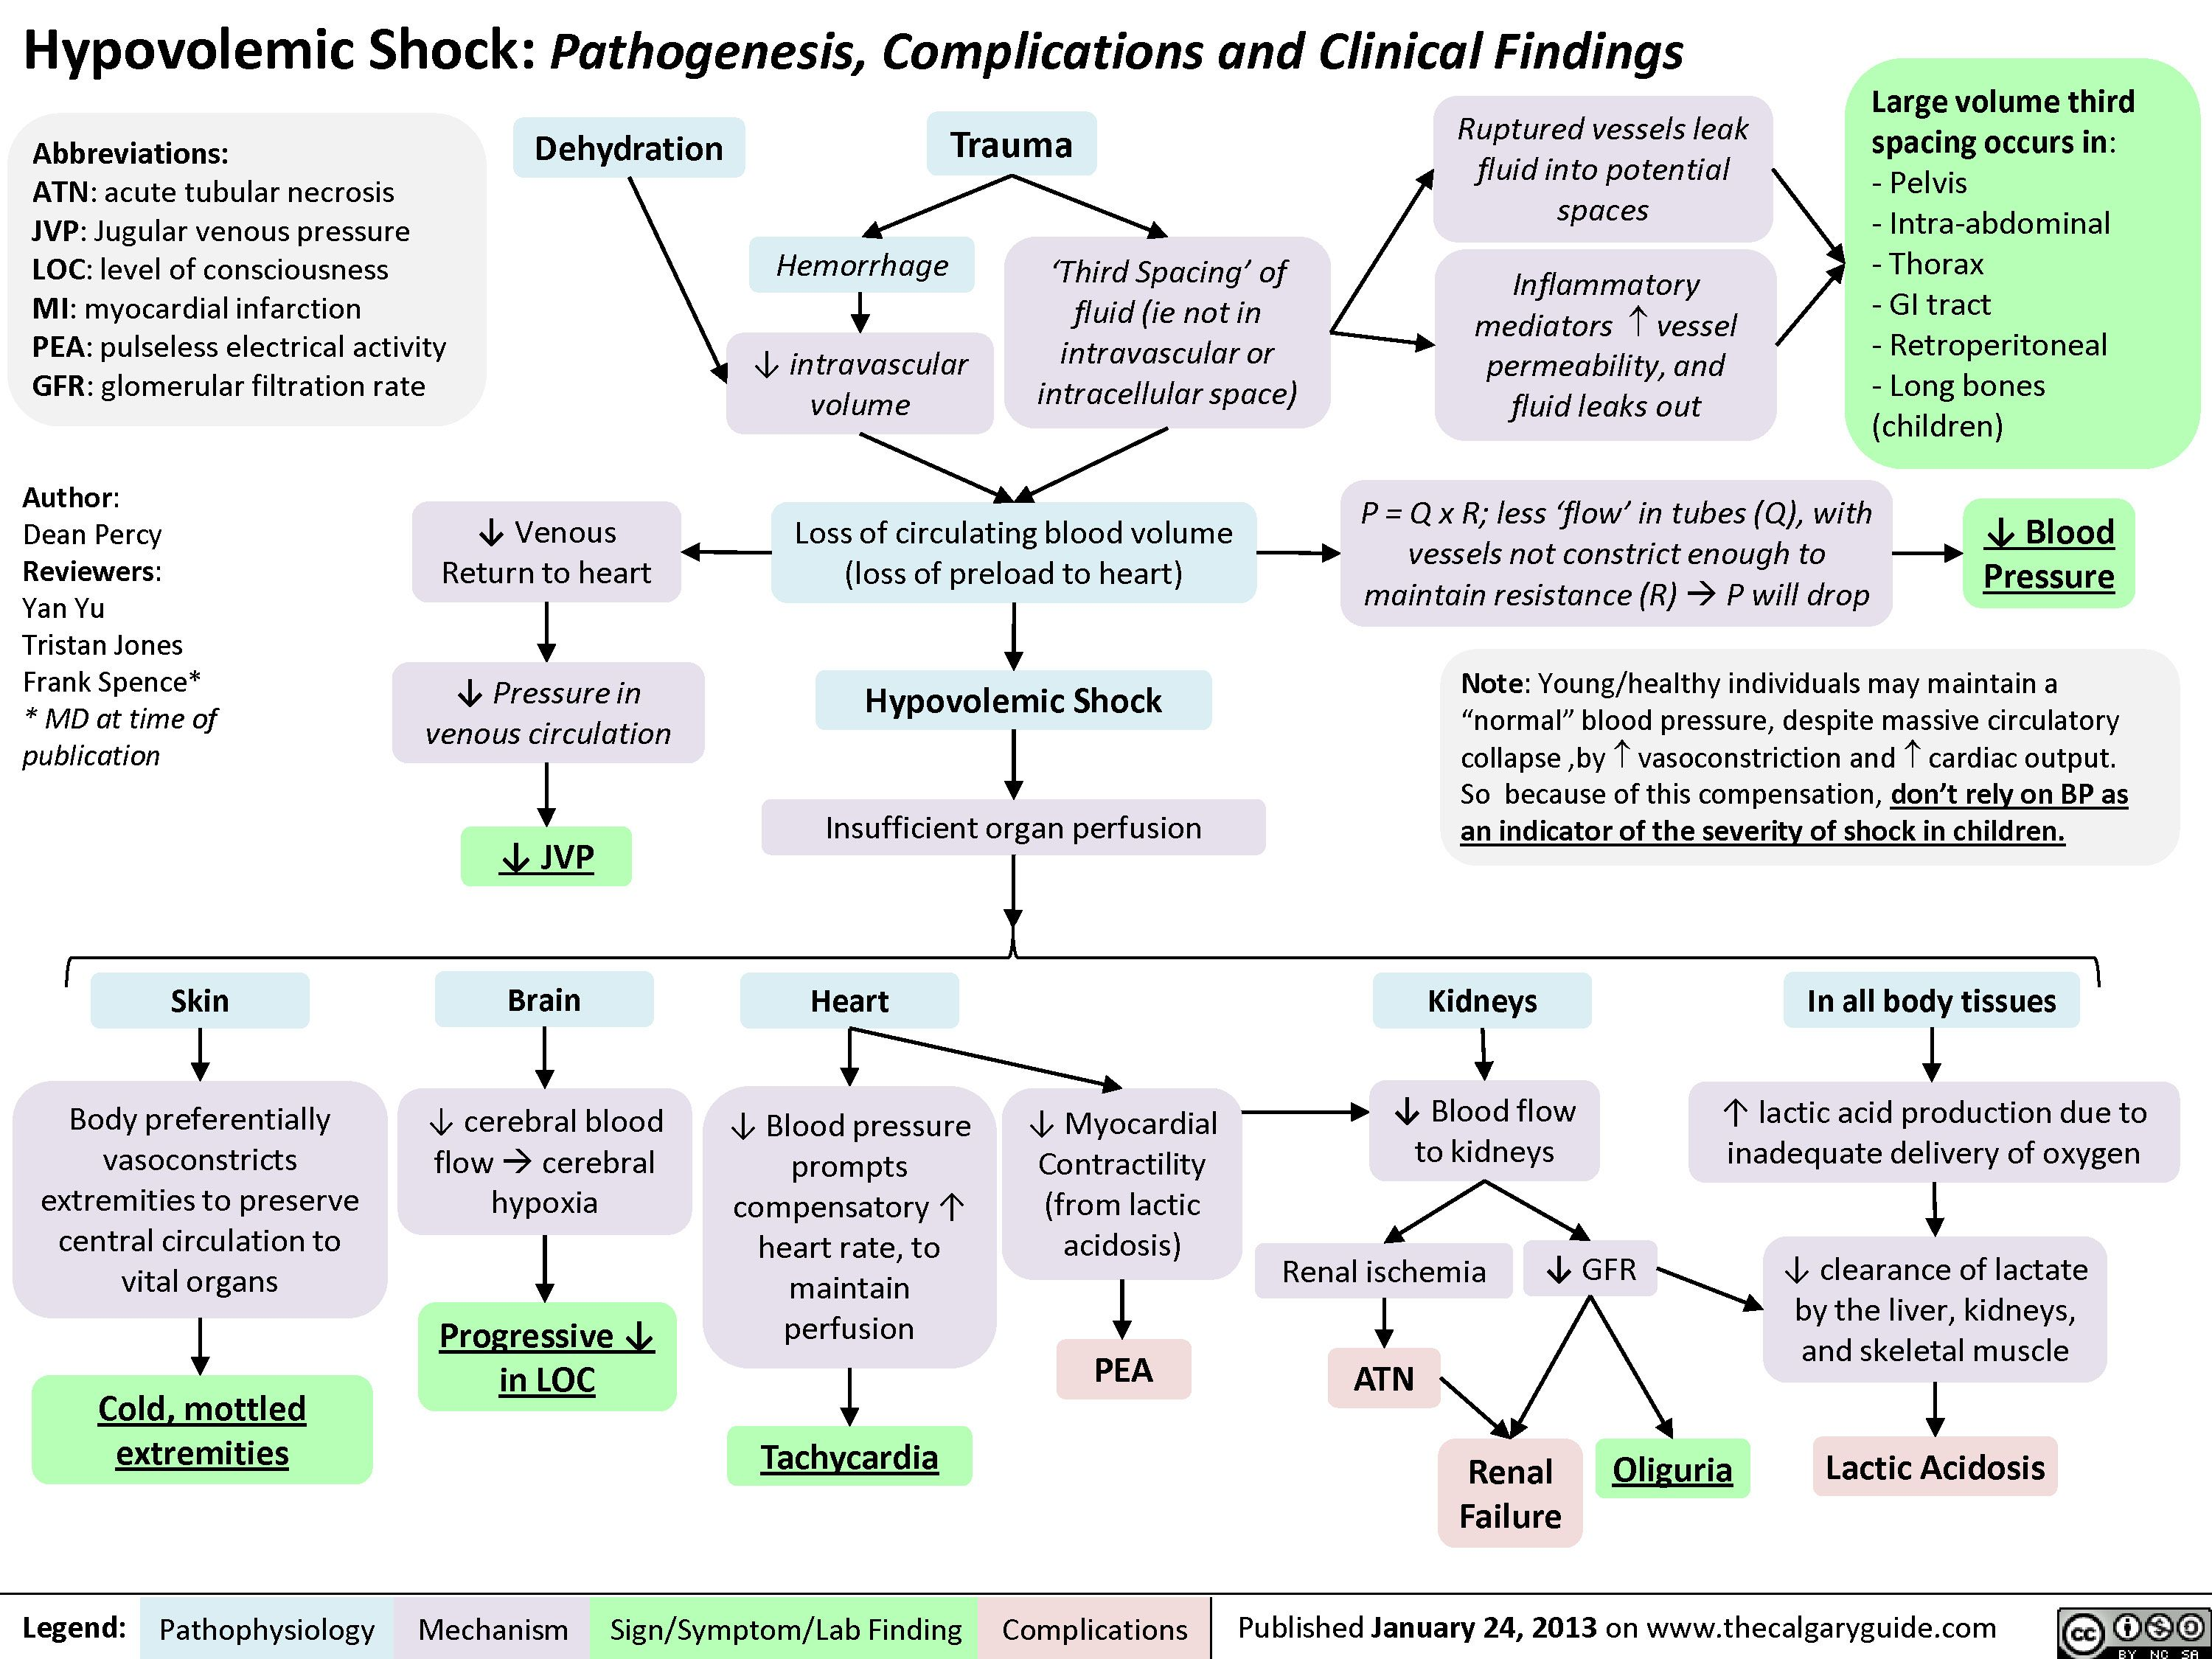 hypovolemic shock: pathogenesis, complications and clinical, Skeleton